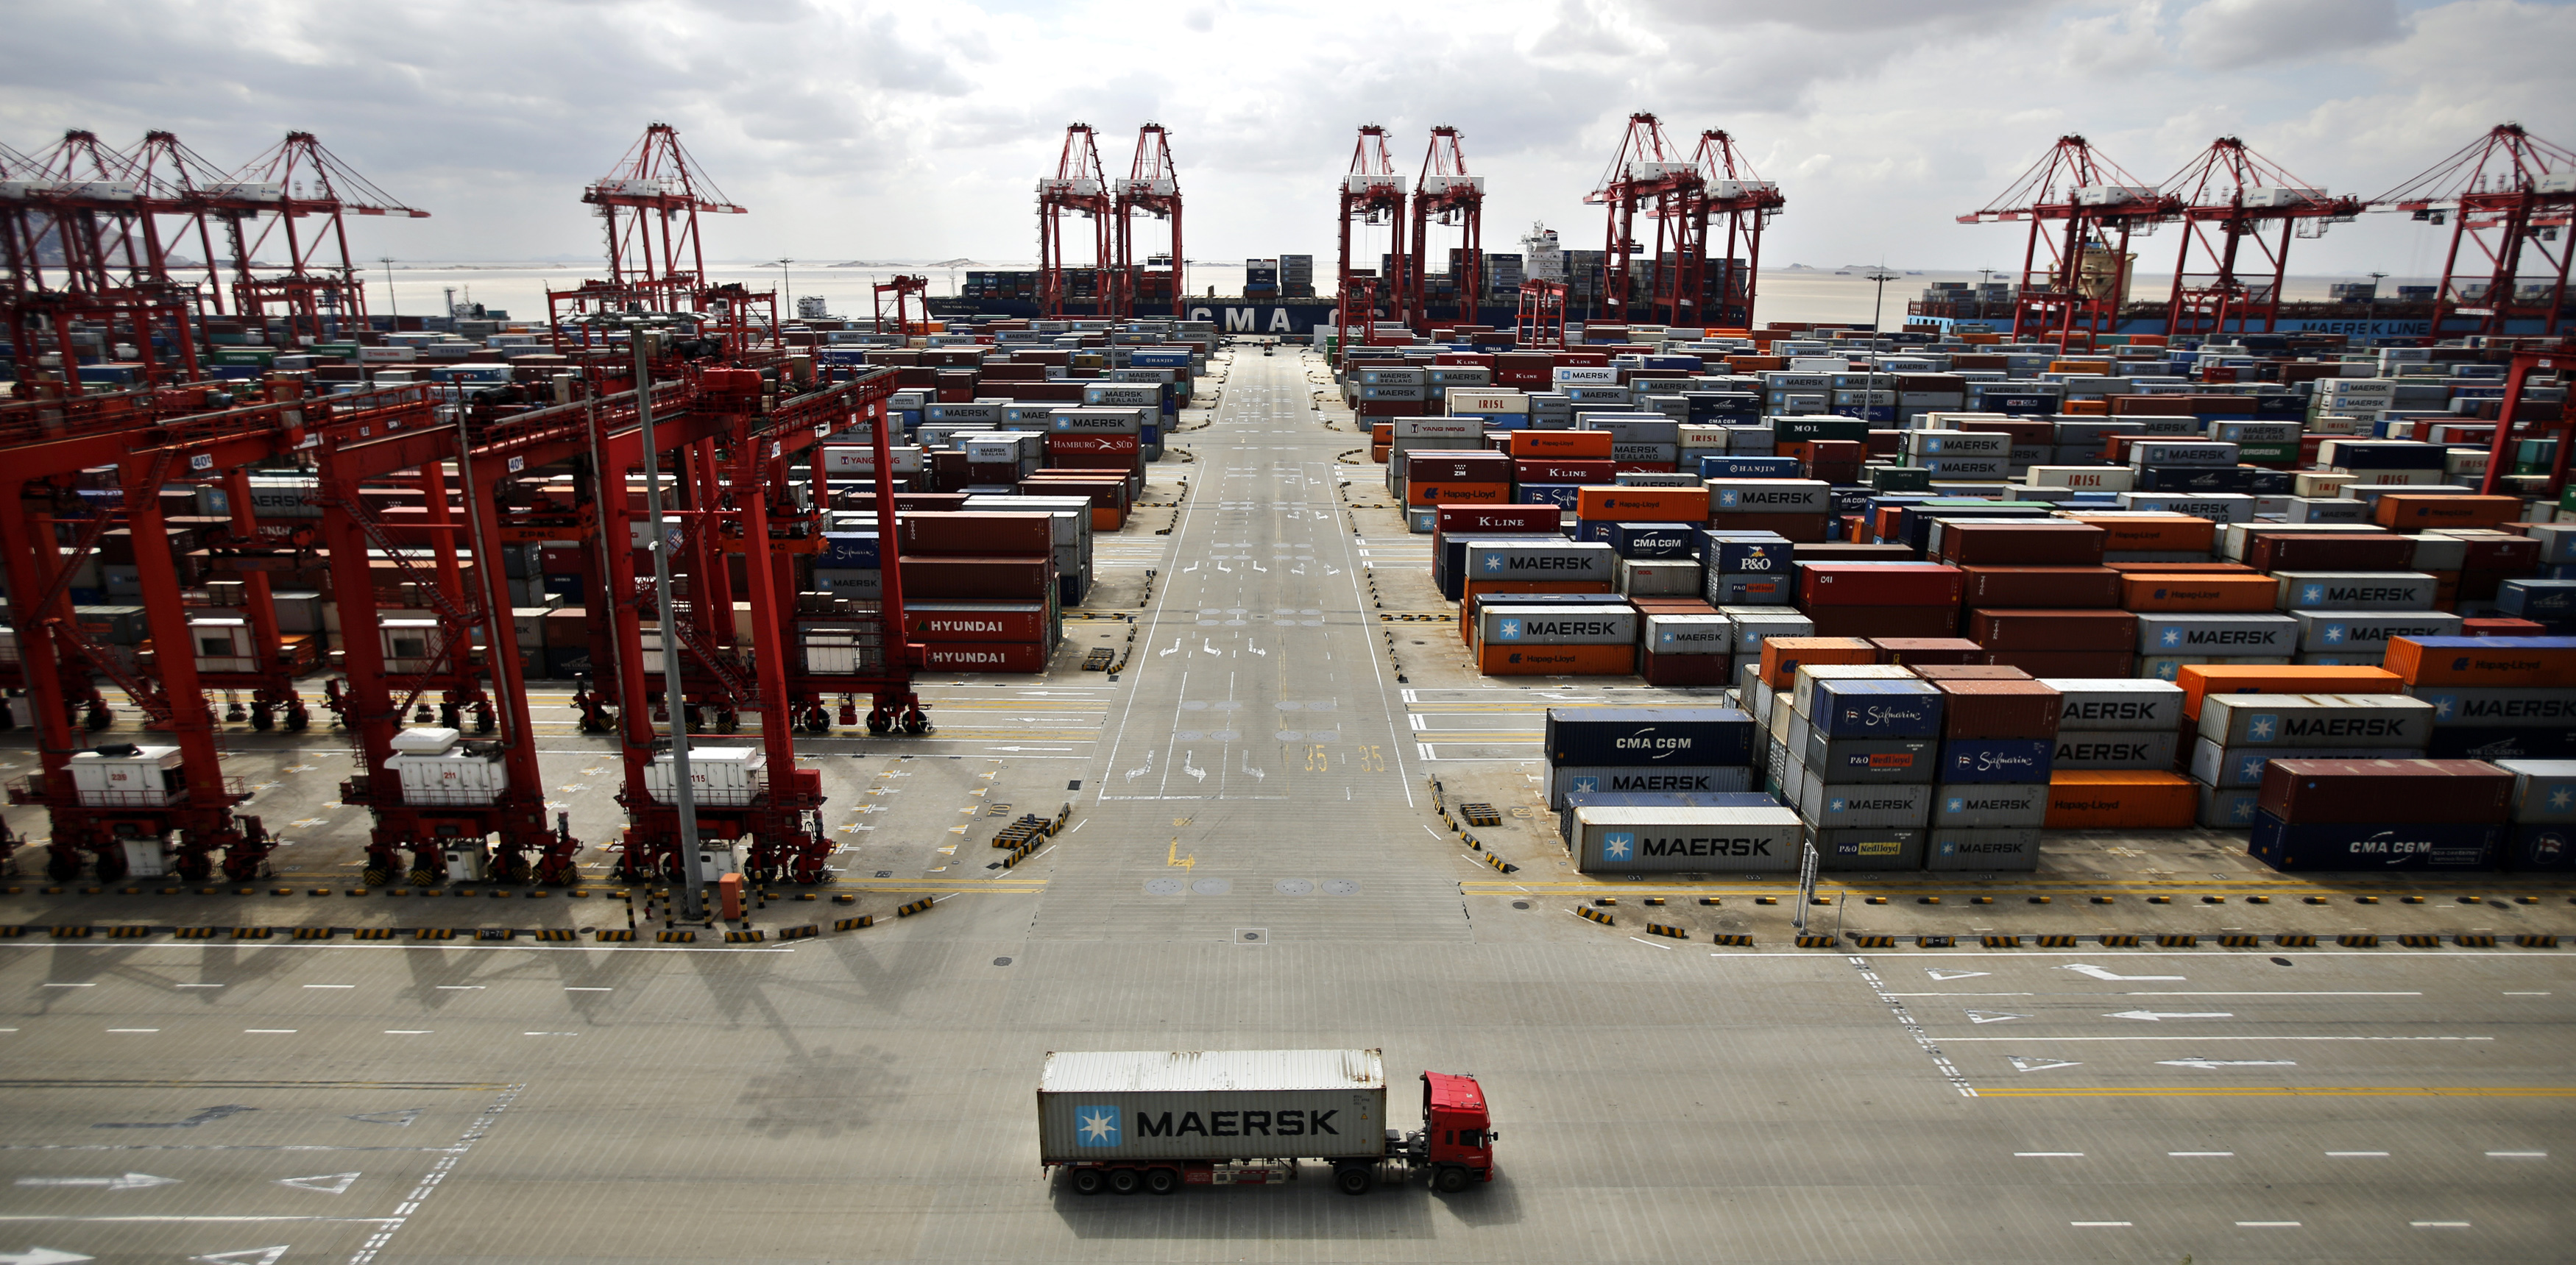 A container truck drives past the container area at the Yangshan Deep Water Port, part of the Shanghai Free-Trade Zone, on Sept. 26, 2013